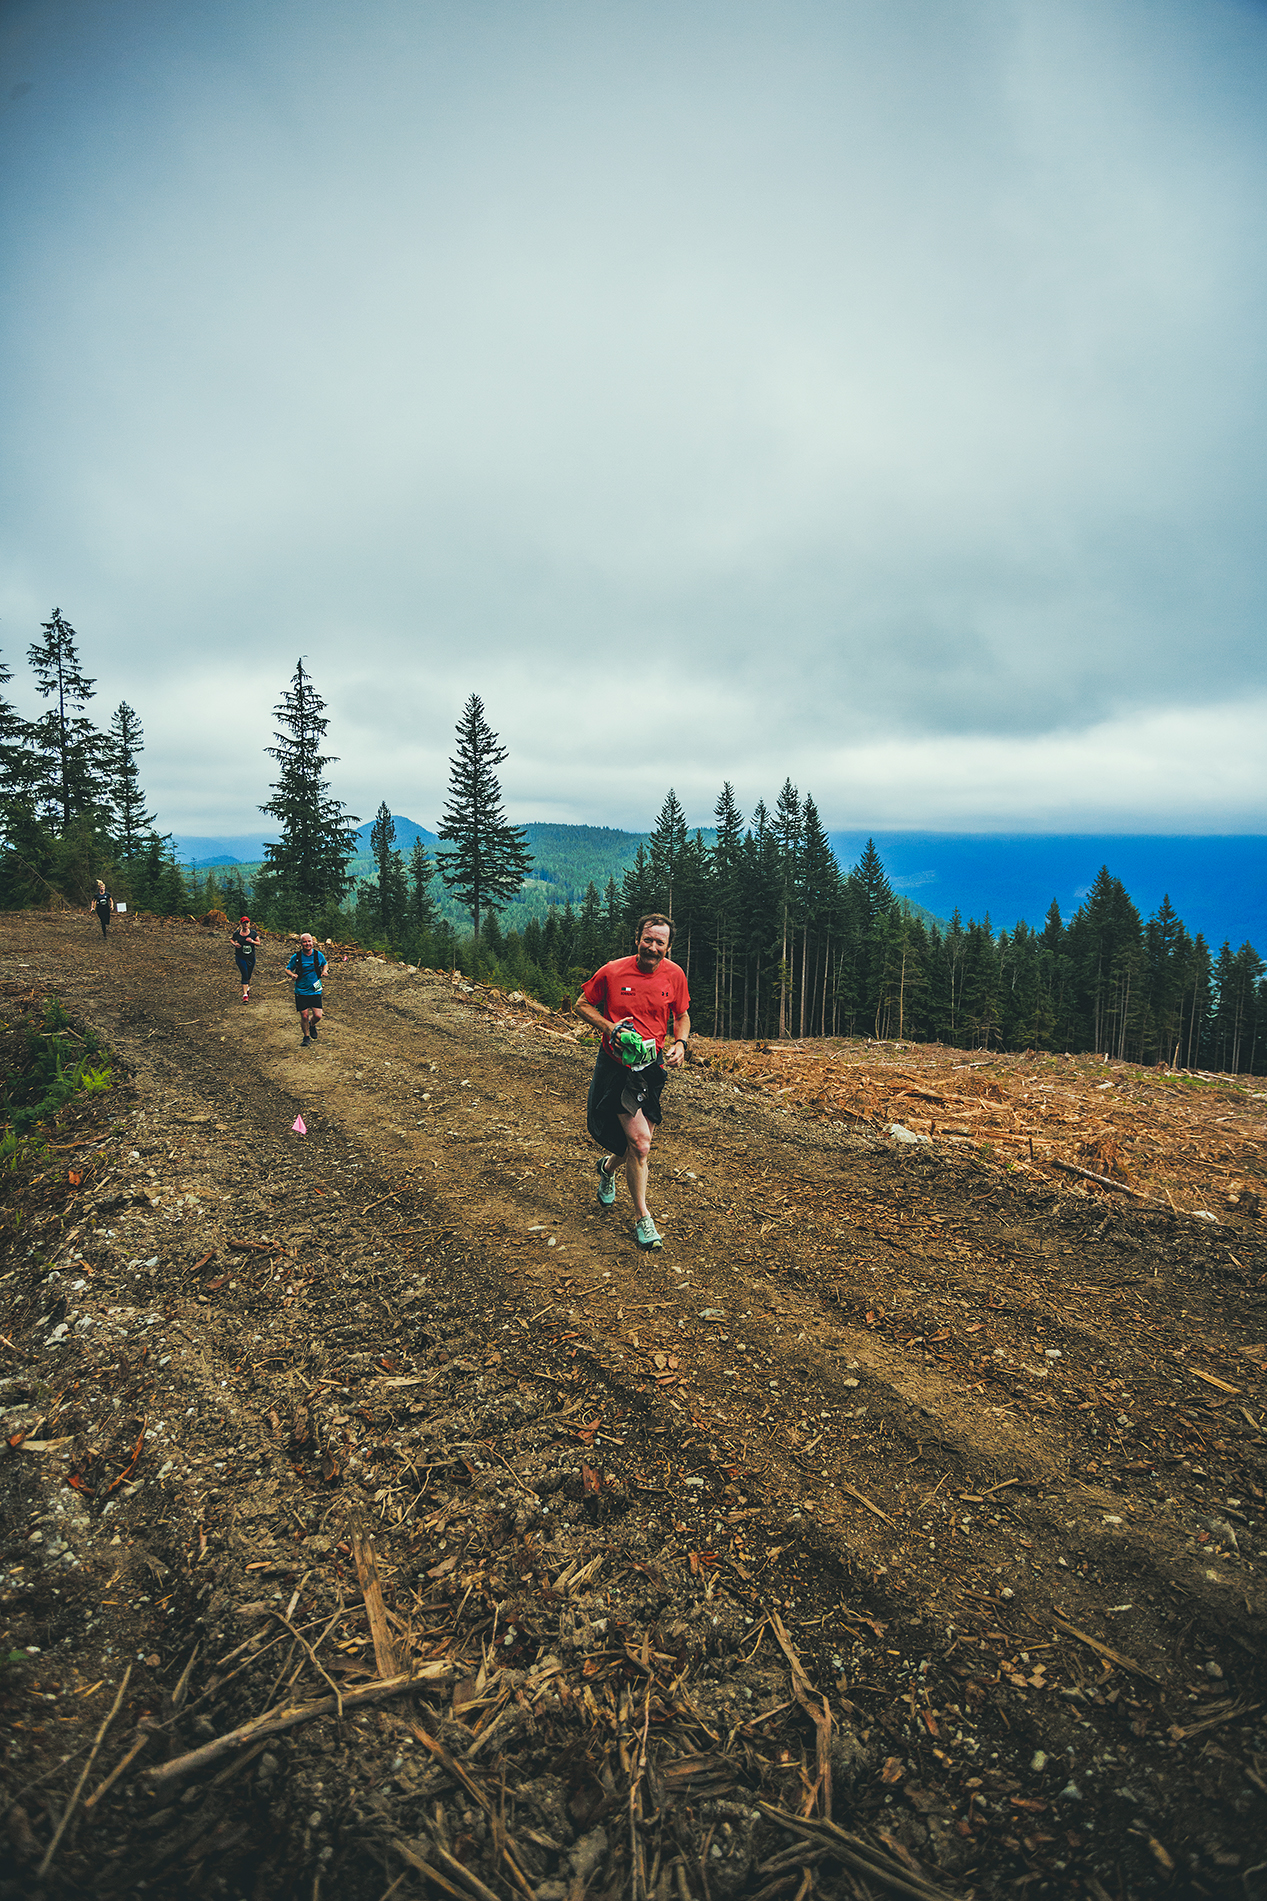 Fraser Valley Trail Races - Bear Mountain - IMG_2764 by Brice Ferre Studio - Vancouver Portrait Adventure and Athlete Photographer.jpg